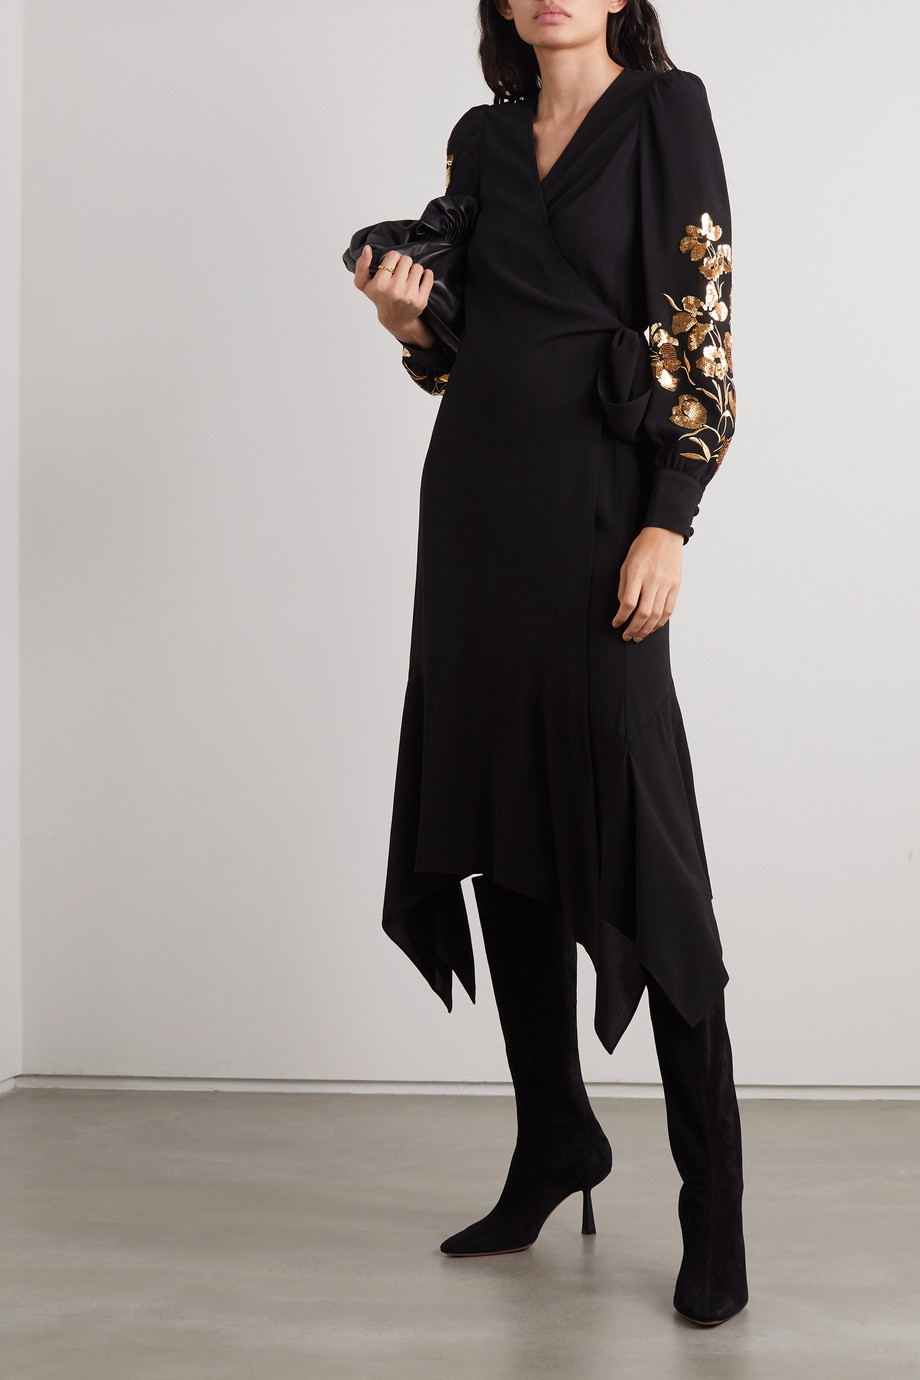 TORY BURCH Asymmetric embellished embroidered crepe wrap dress